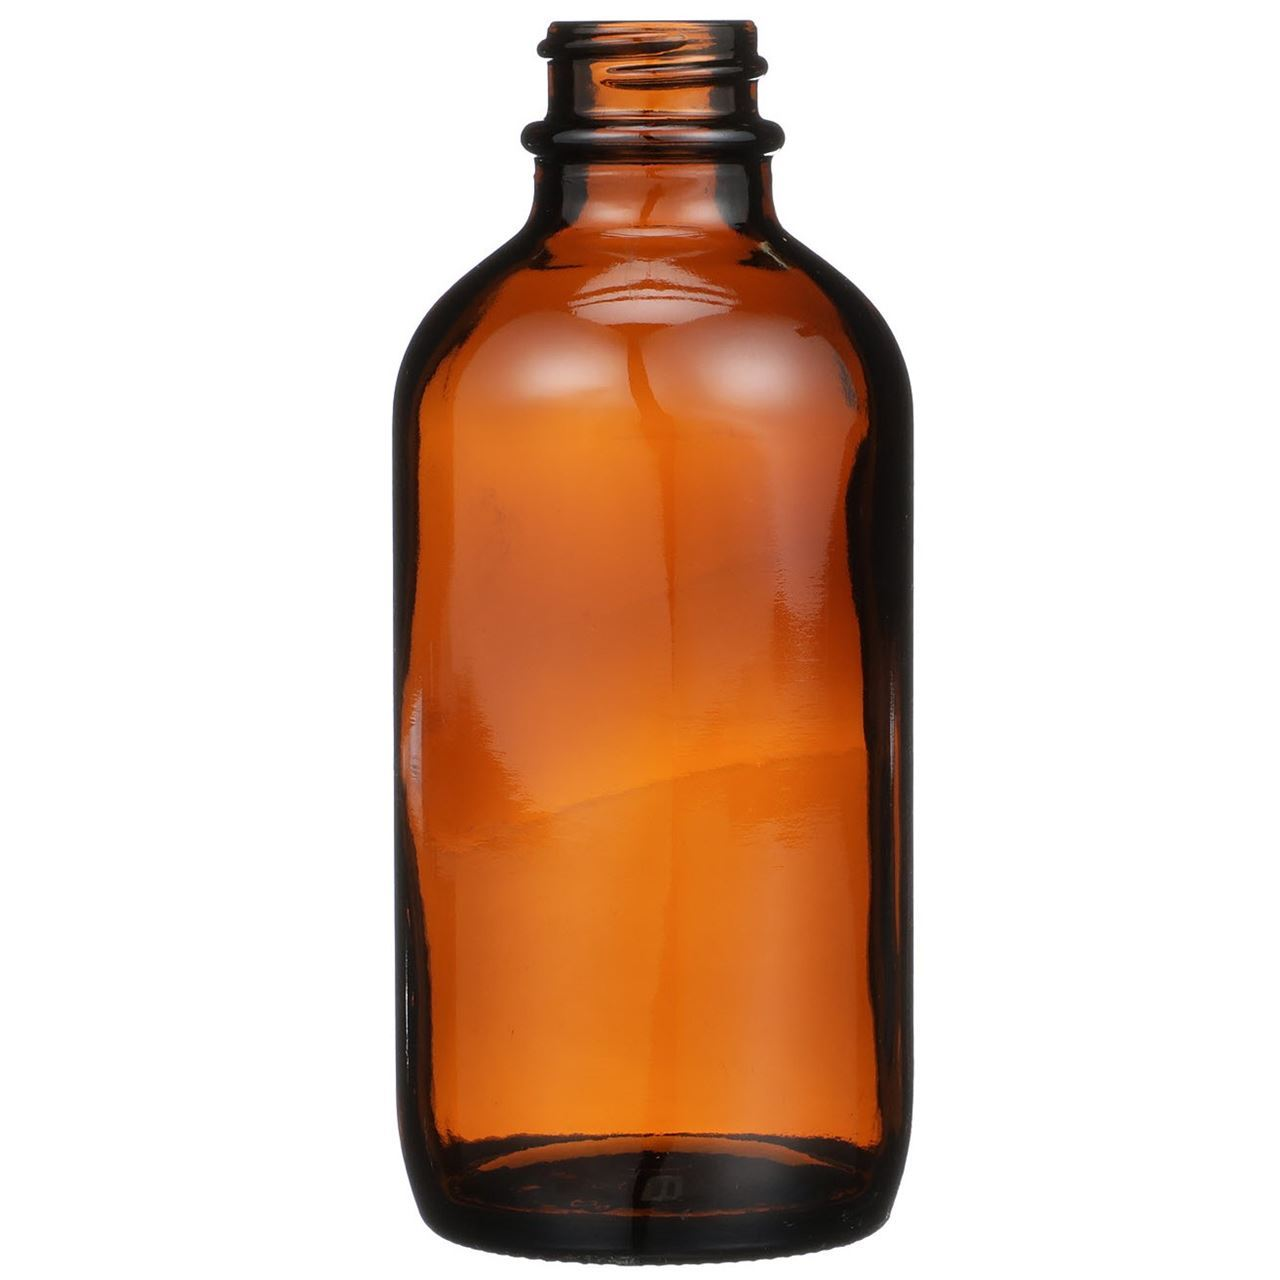 4 Oz Amber Glass Boston Round Bottle 22 400 Neck Finish